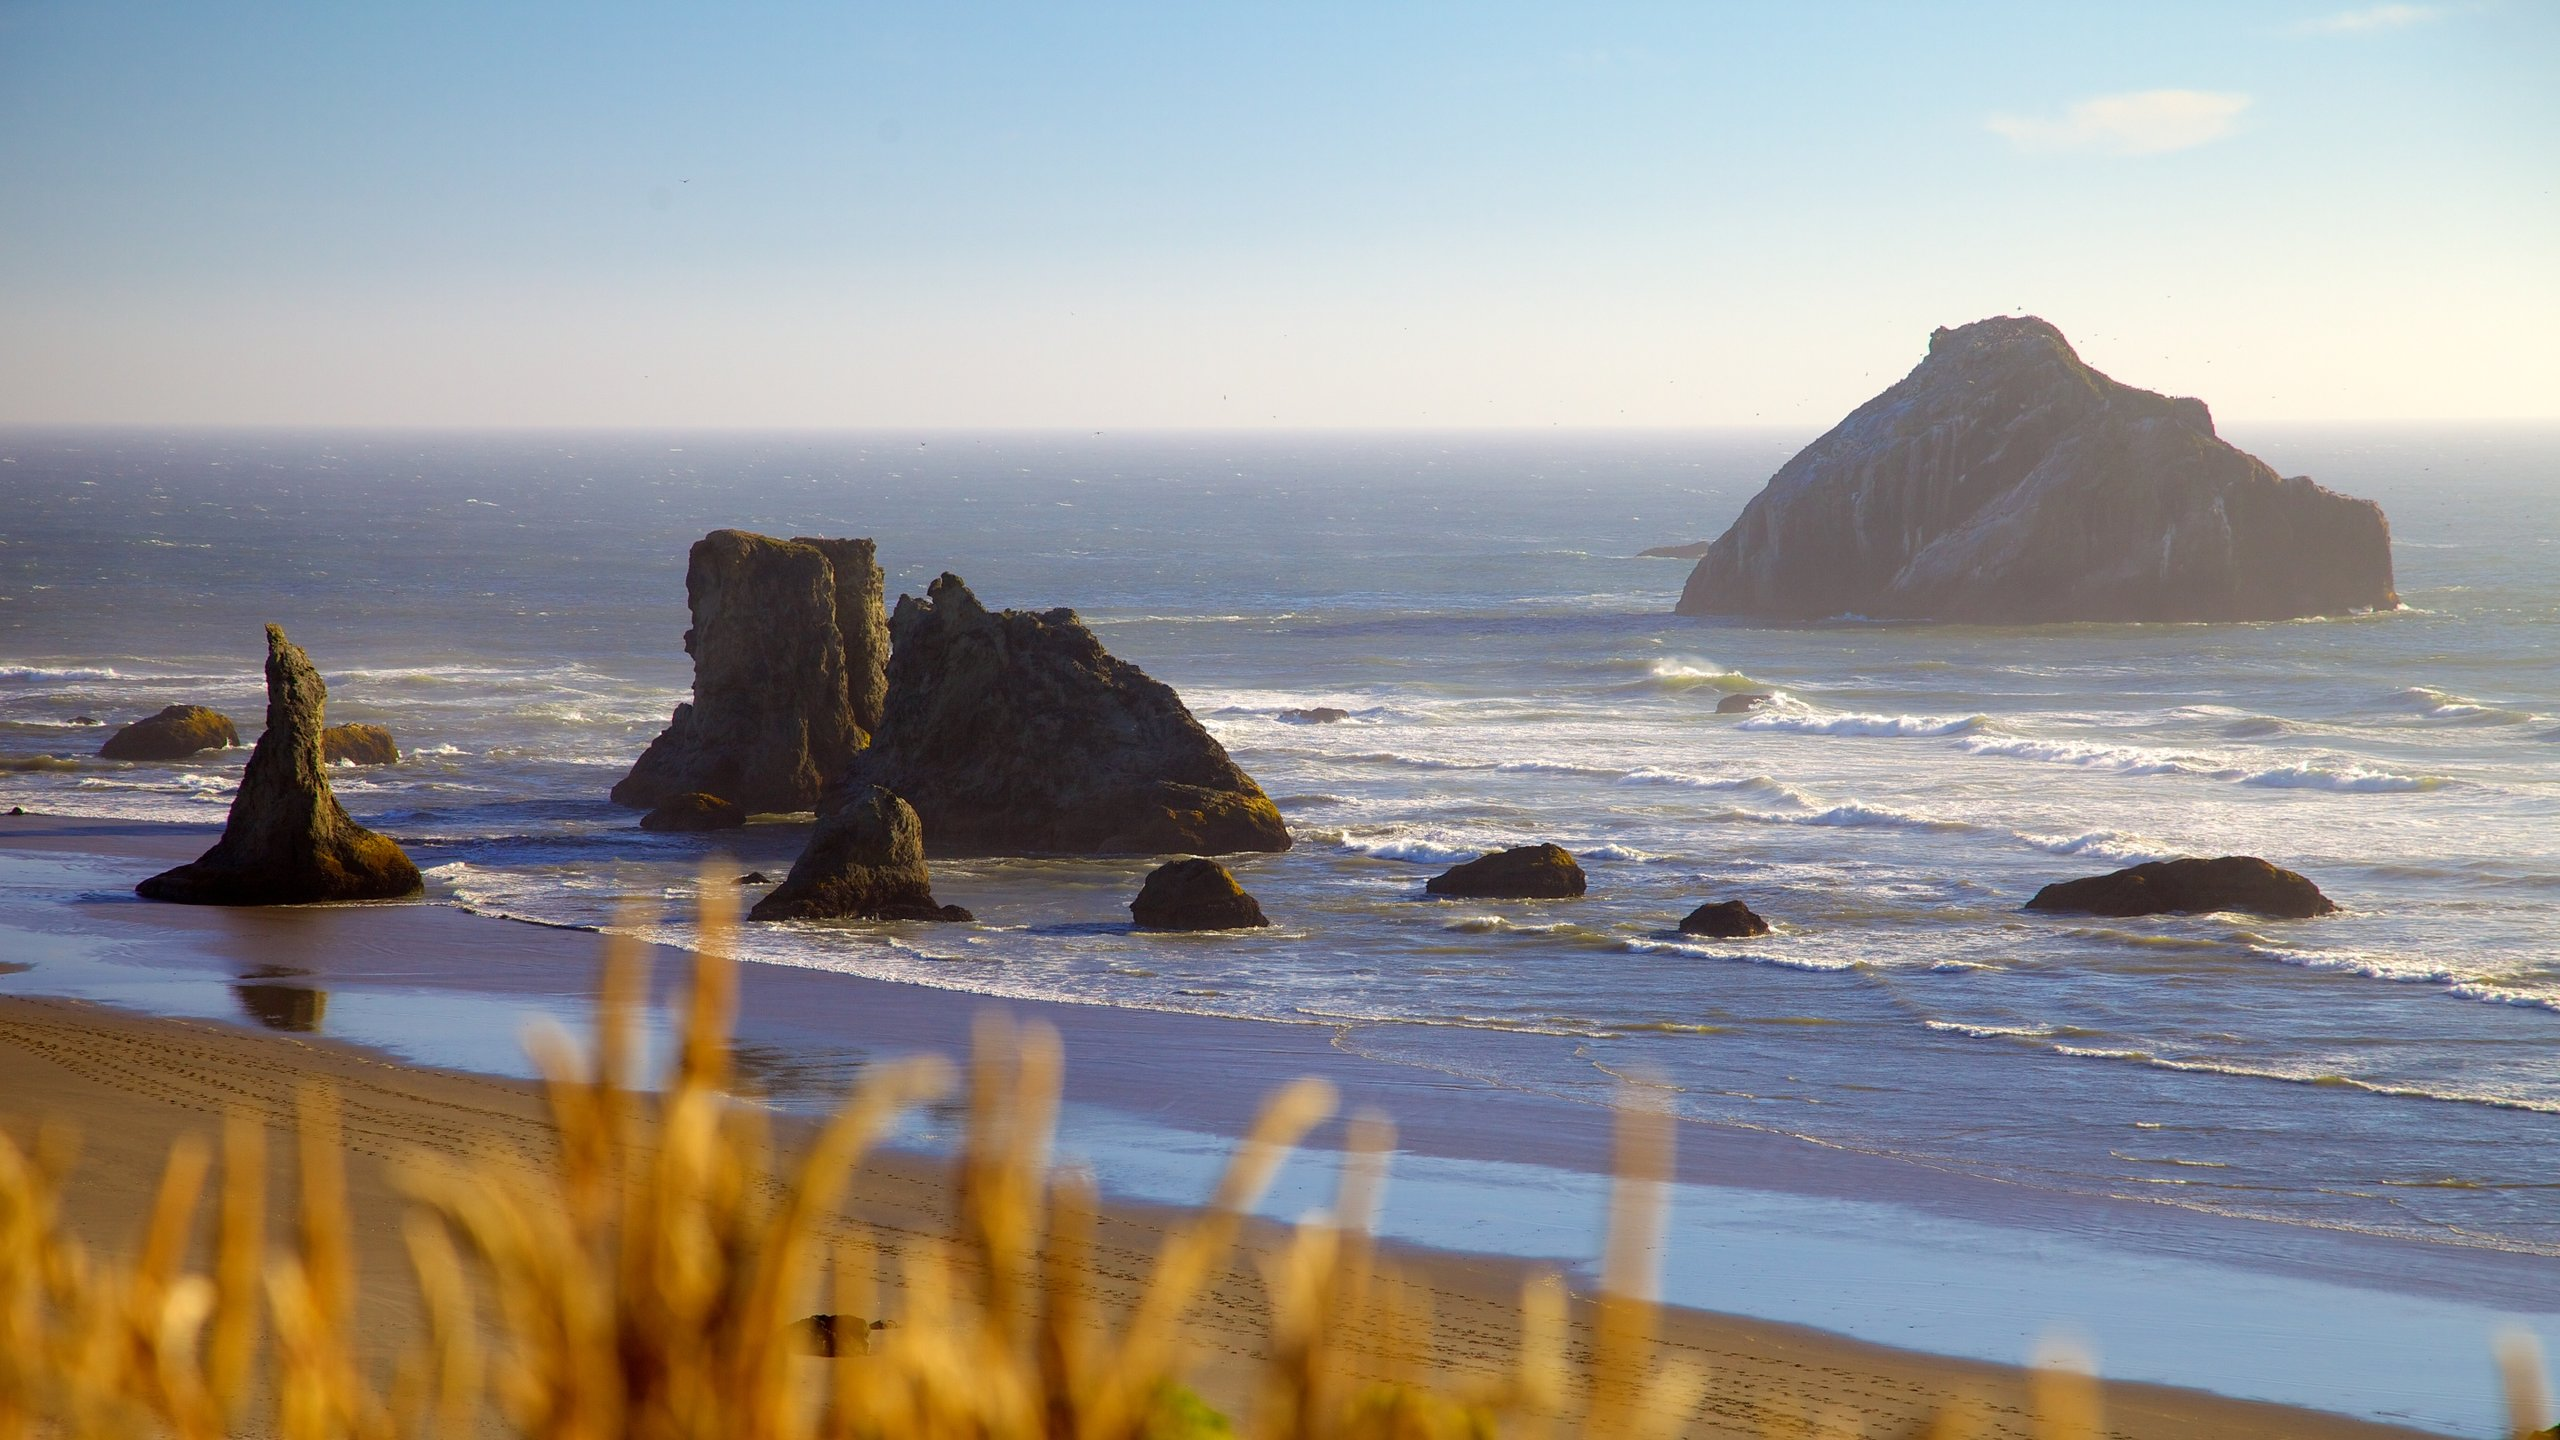 Explore Oregon's beautiful southern coast at this beach in Bandon, where you can see wildlife, a historic lighthouse and the humanoid Face Rock.